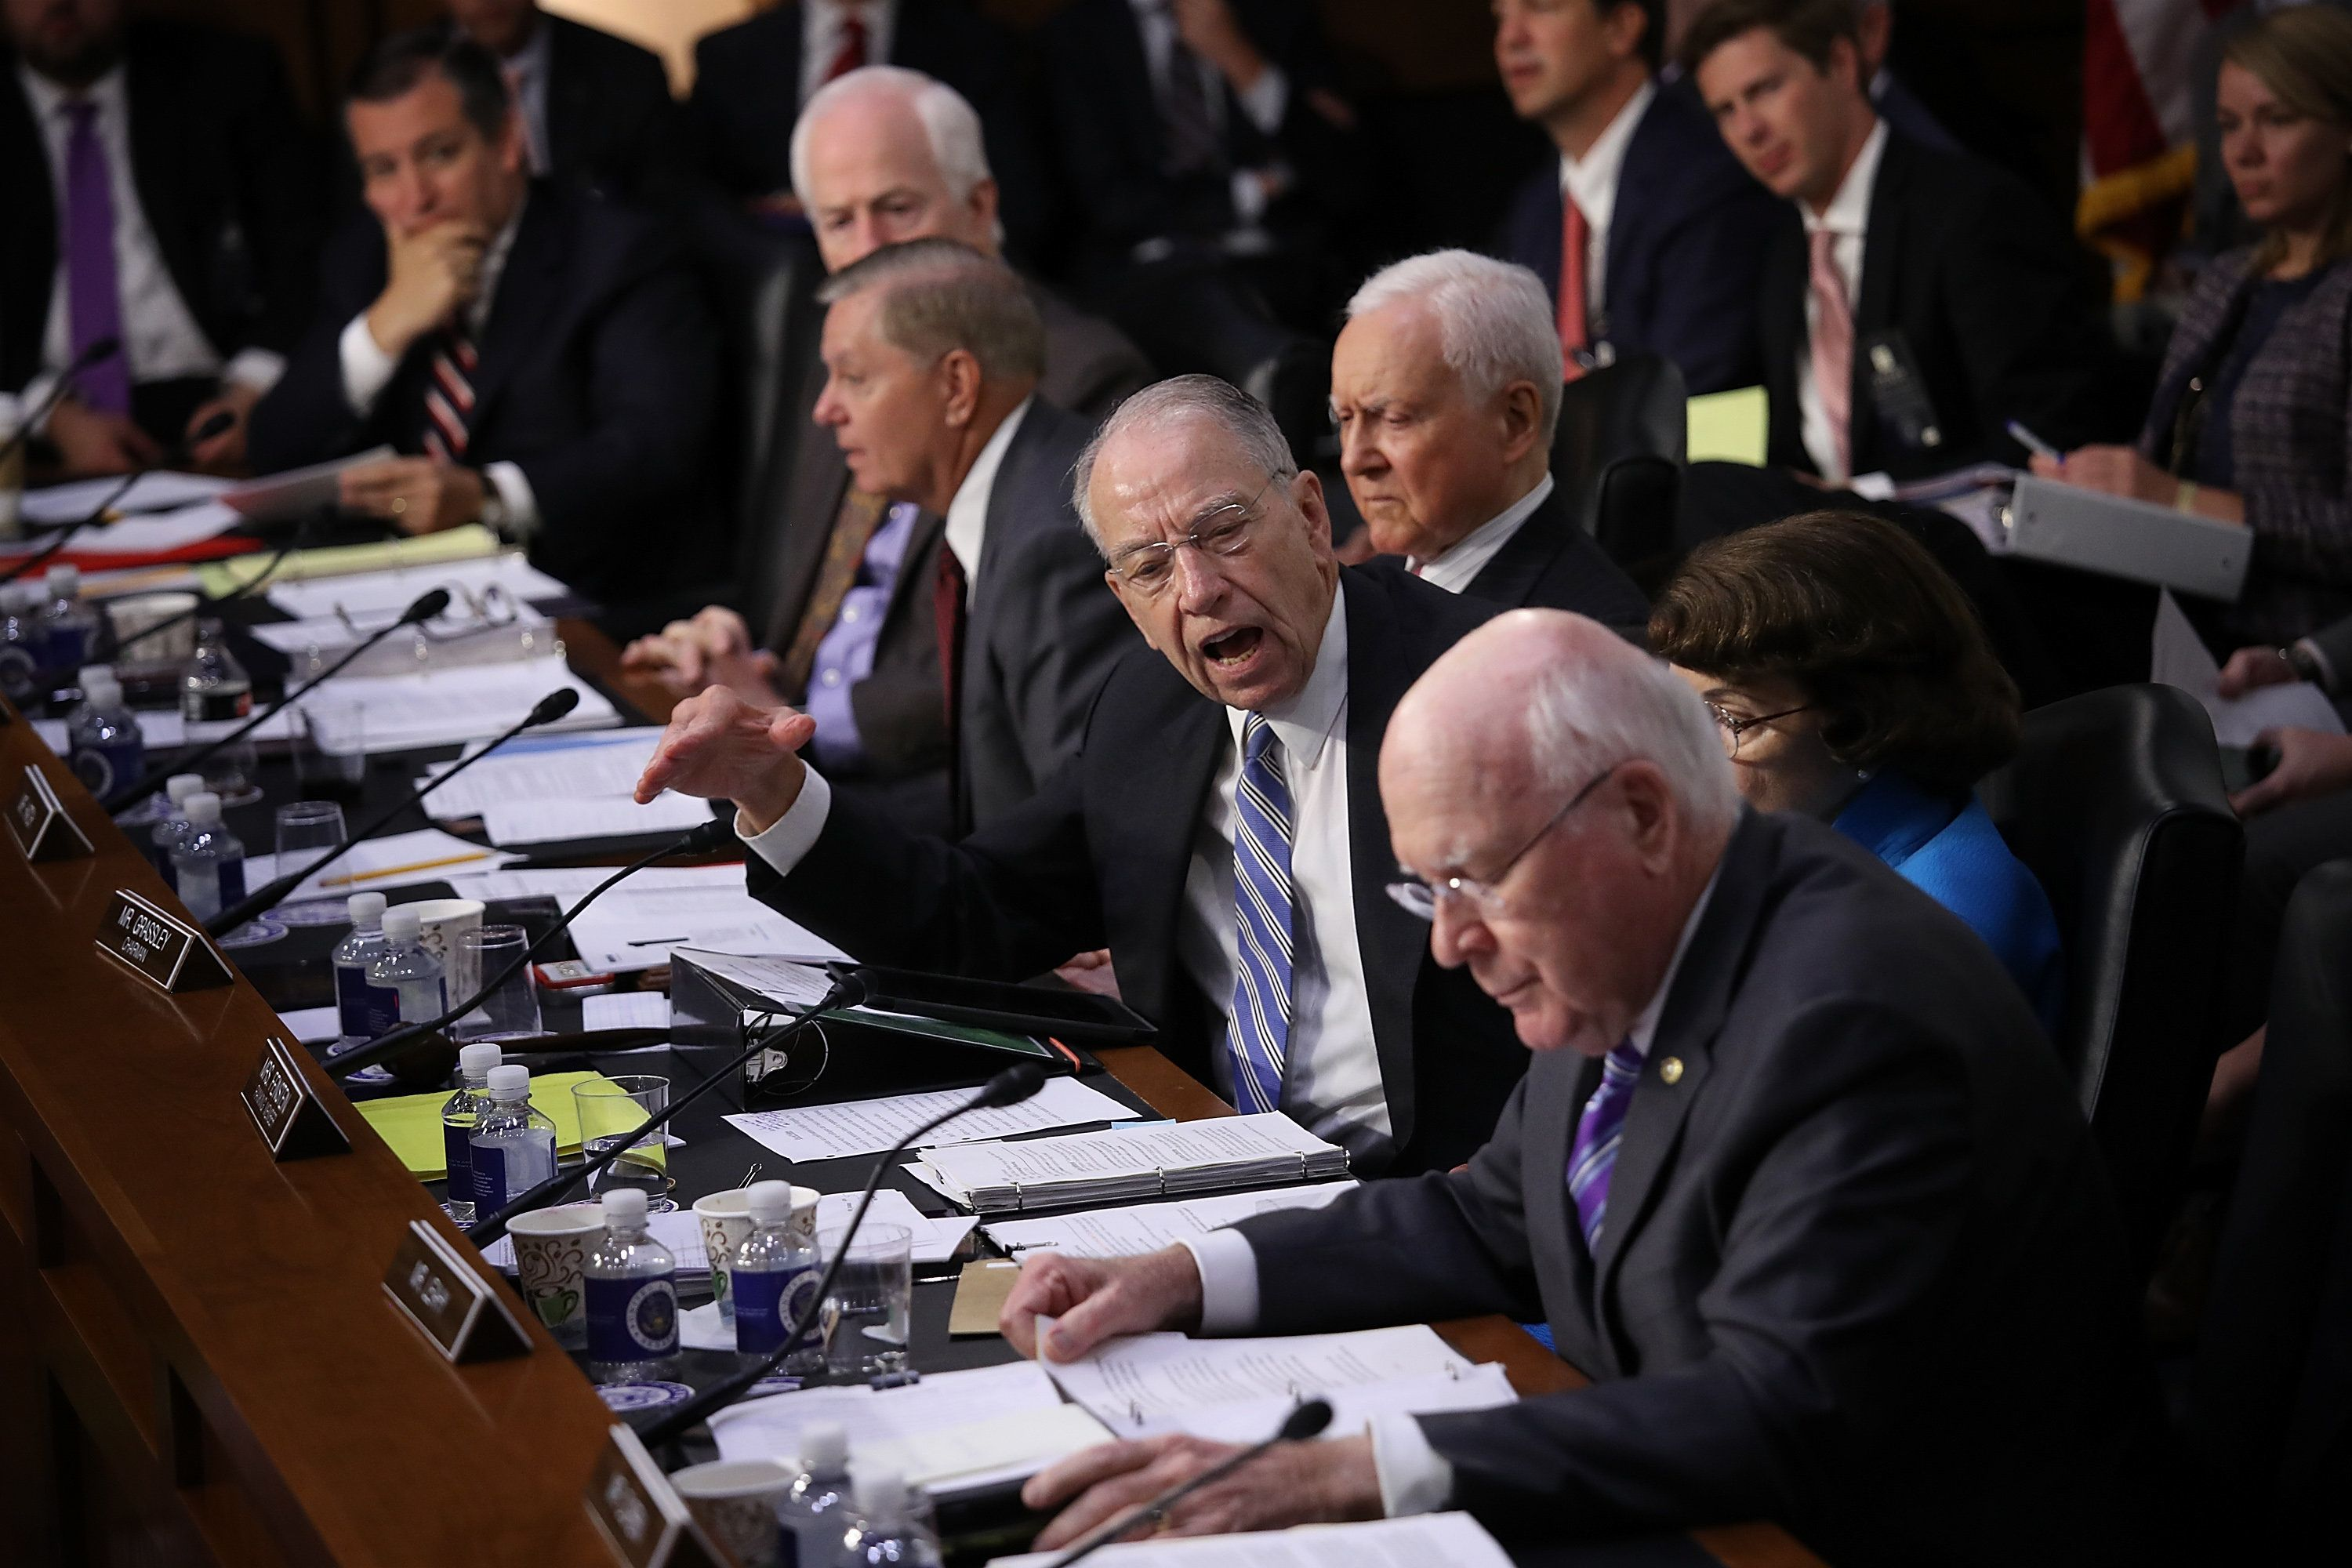 Senate Judiciary Committee Chairman Chuck Grassley (R-Iowa) shouts at Leahy as he questioned the lack of disclosure of Kavanaugh's documents.